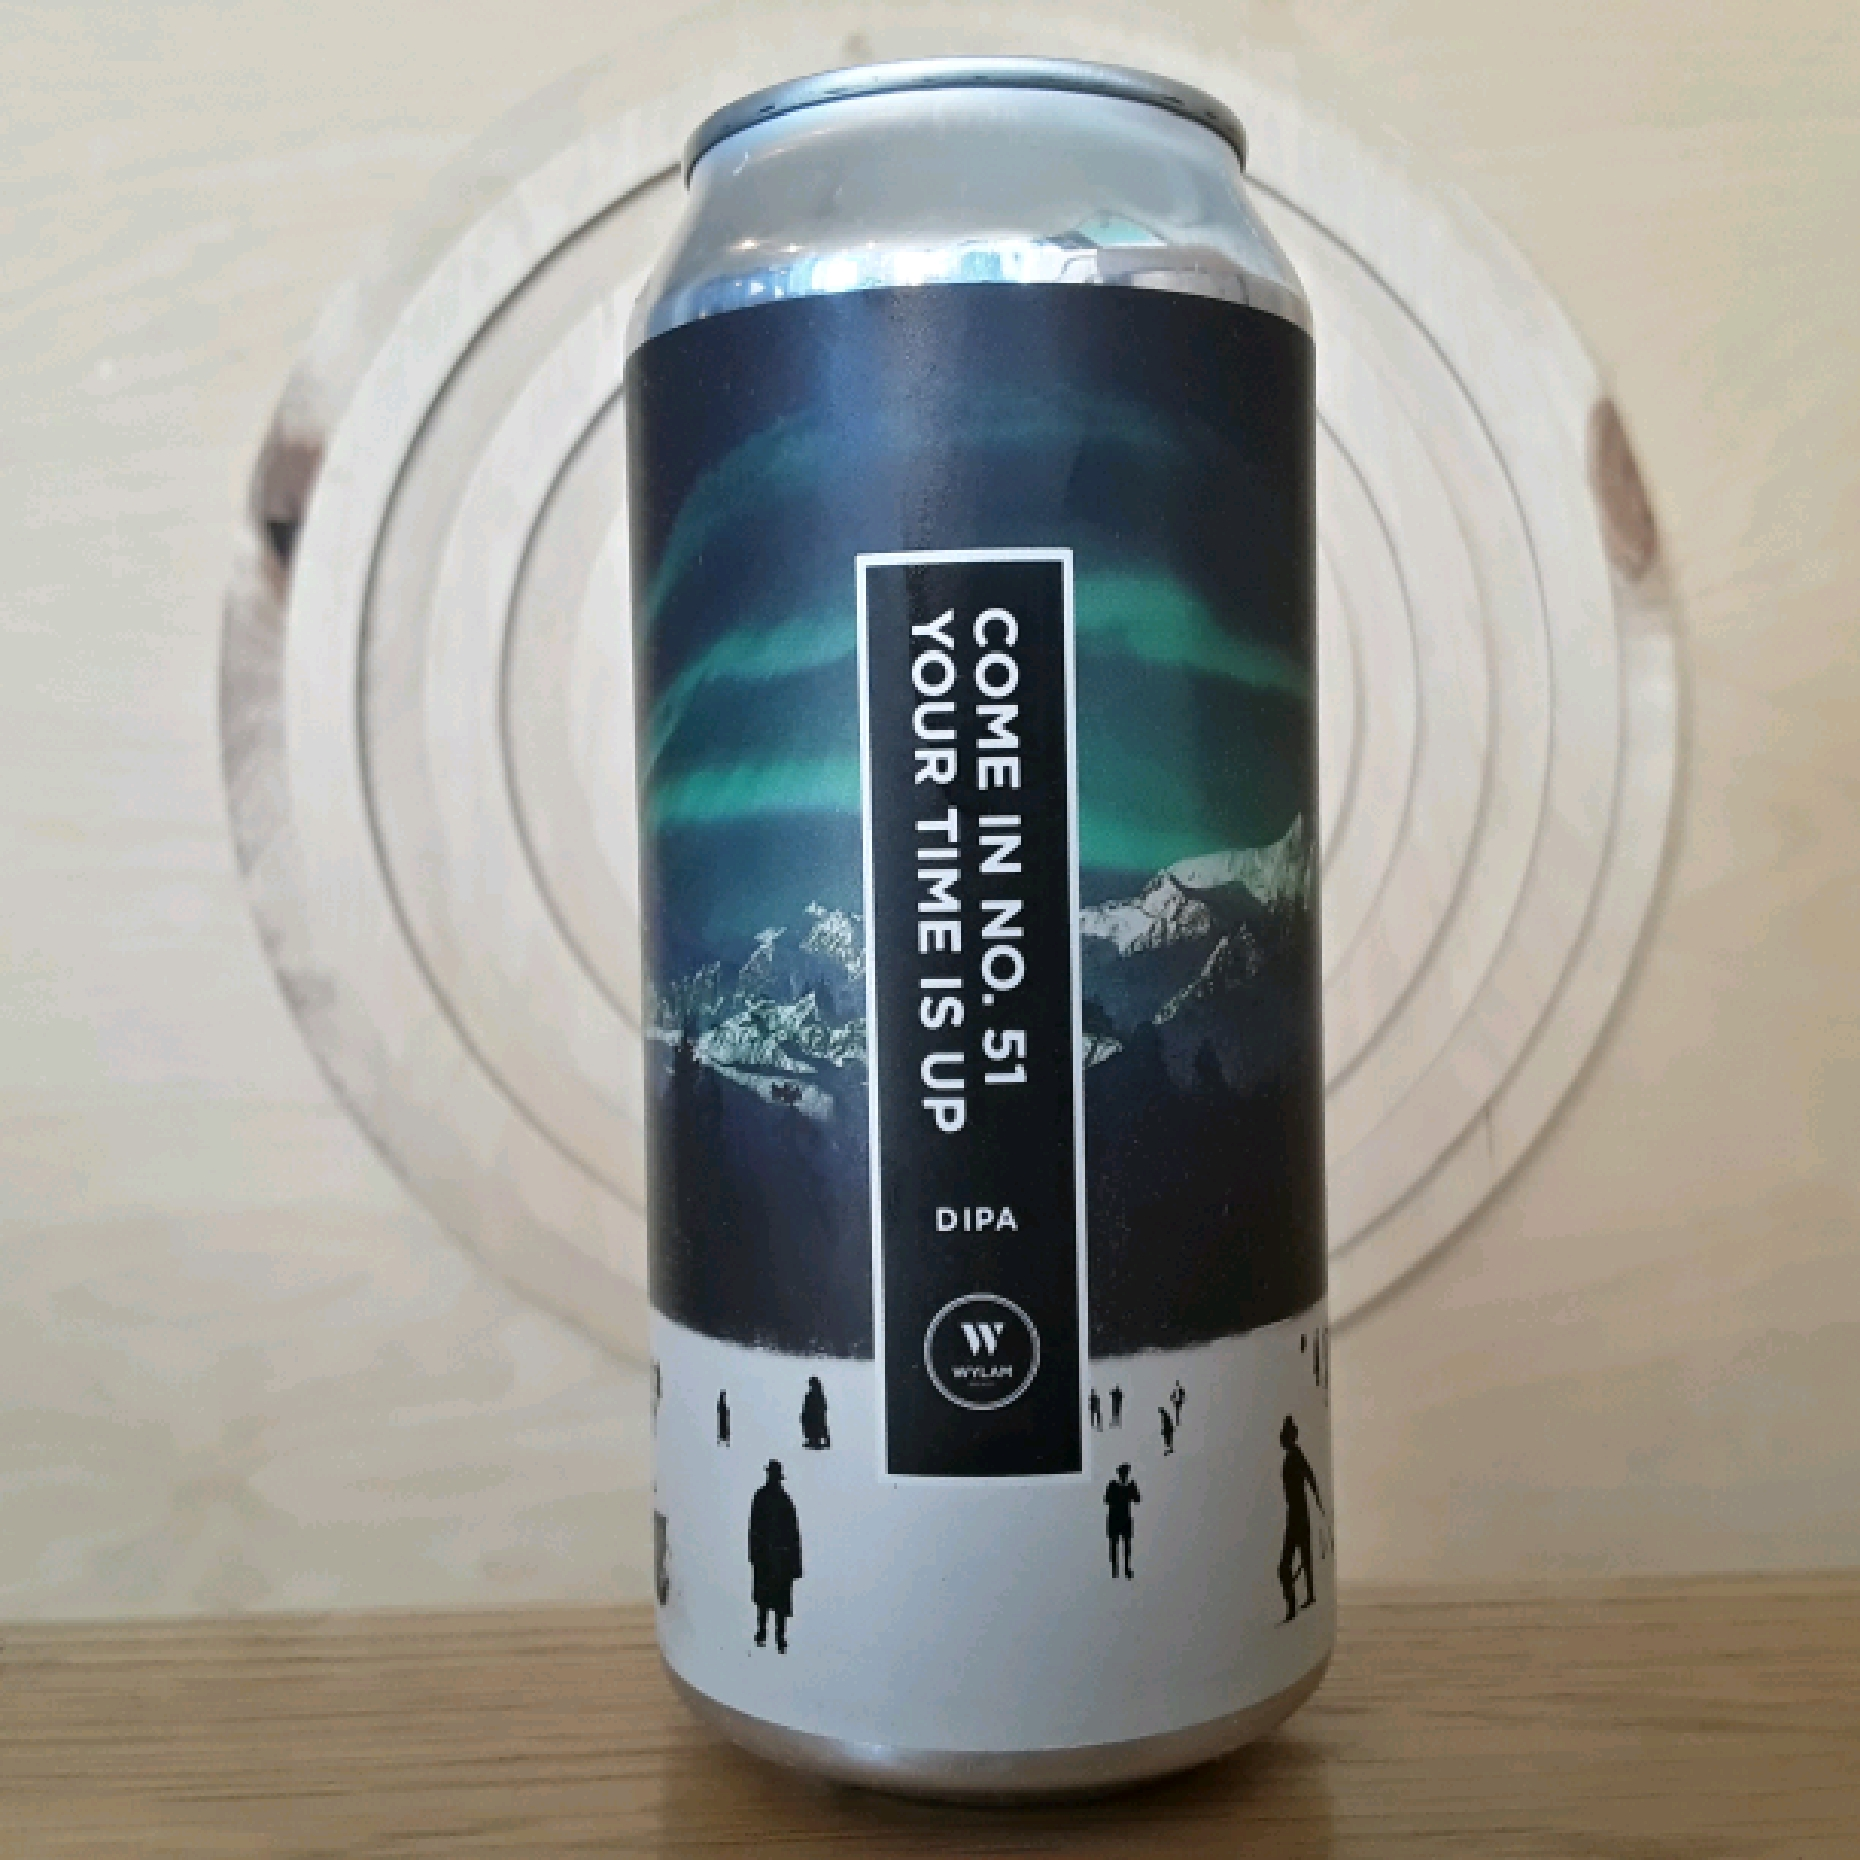 Wylam | Come in No 51 | DIPA